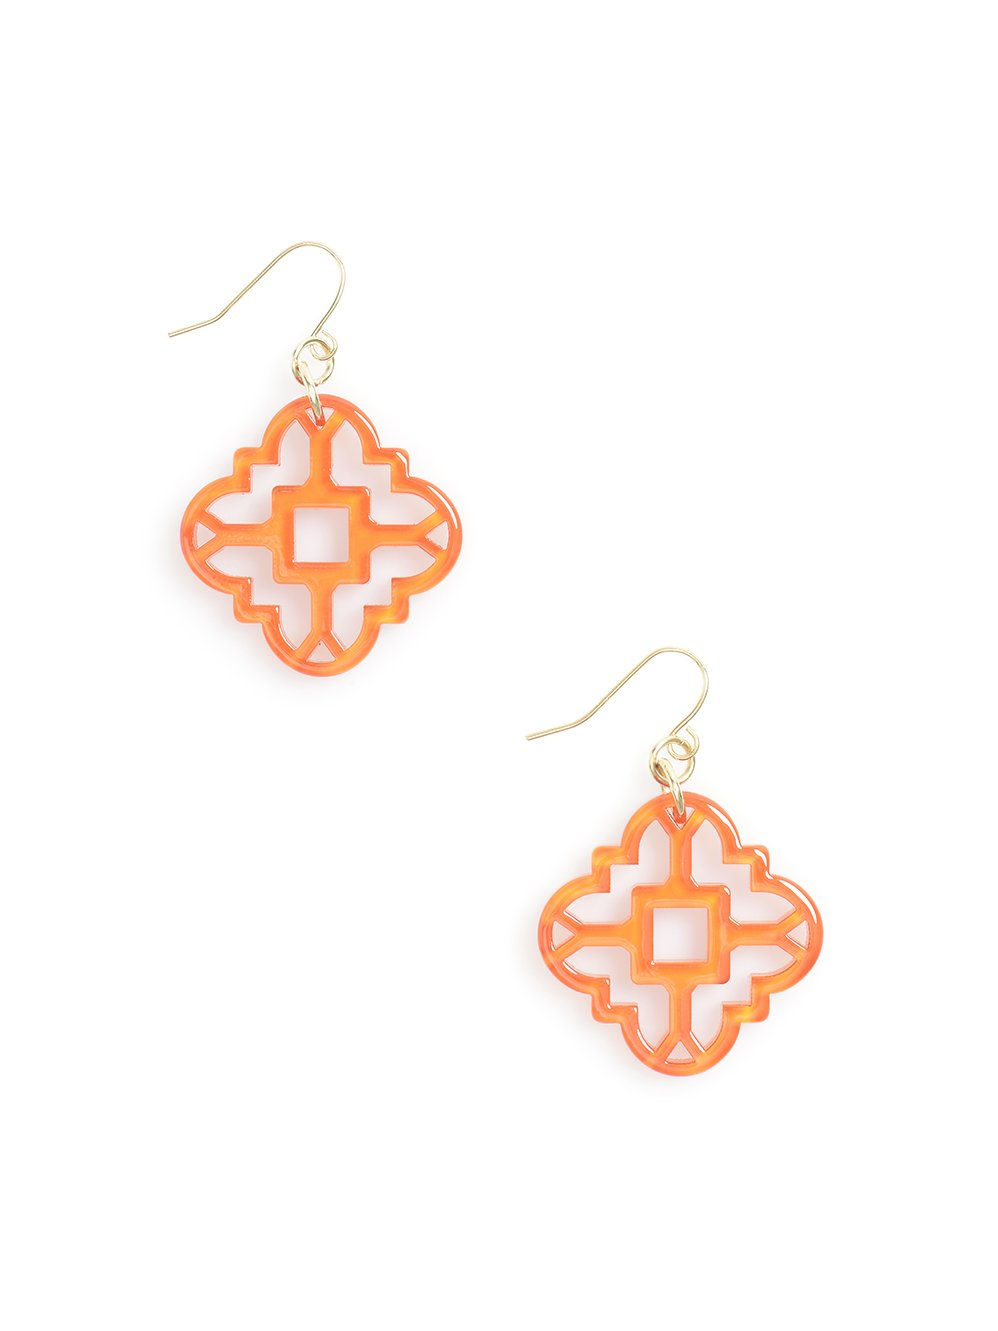 ZENZII Modern Mosaic Resin Earring (Bright Orange)